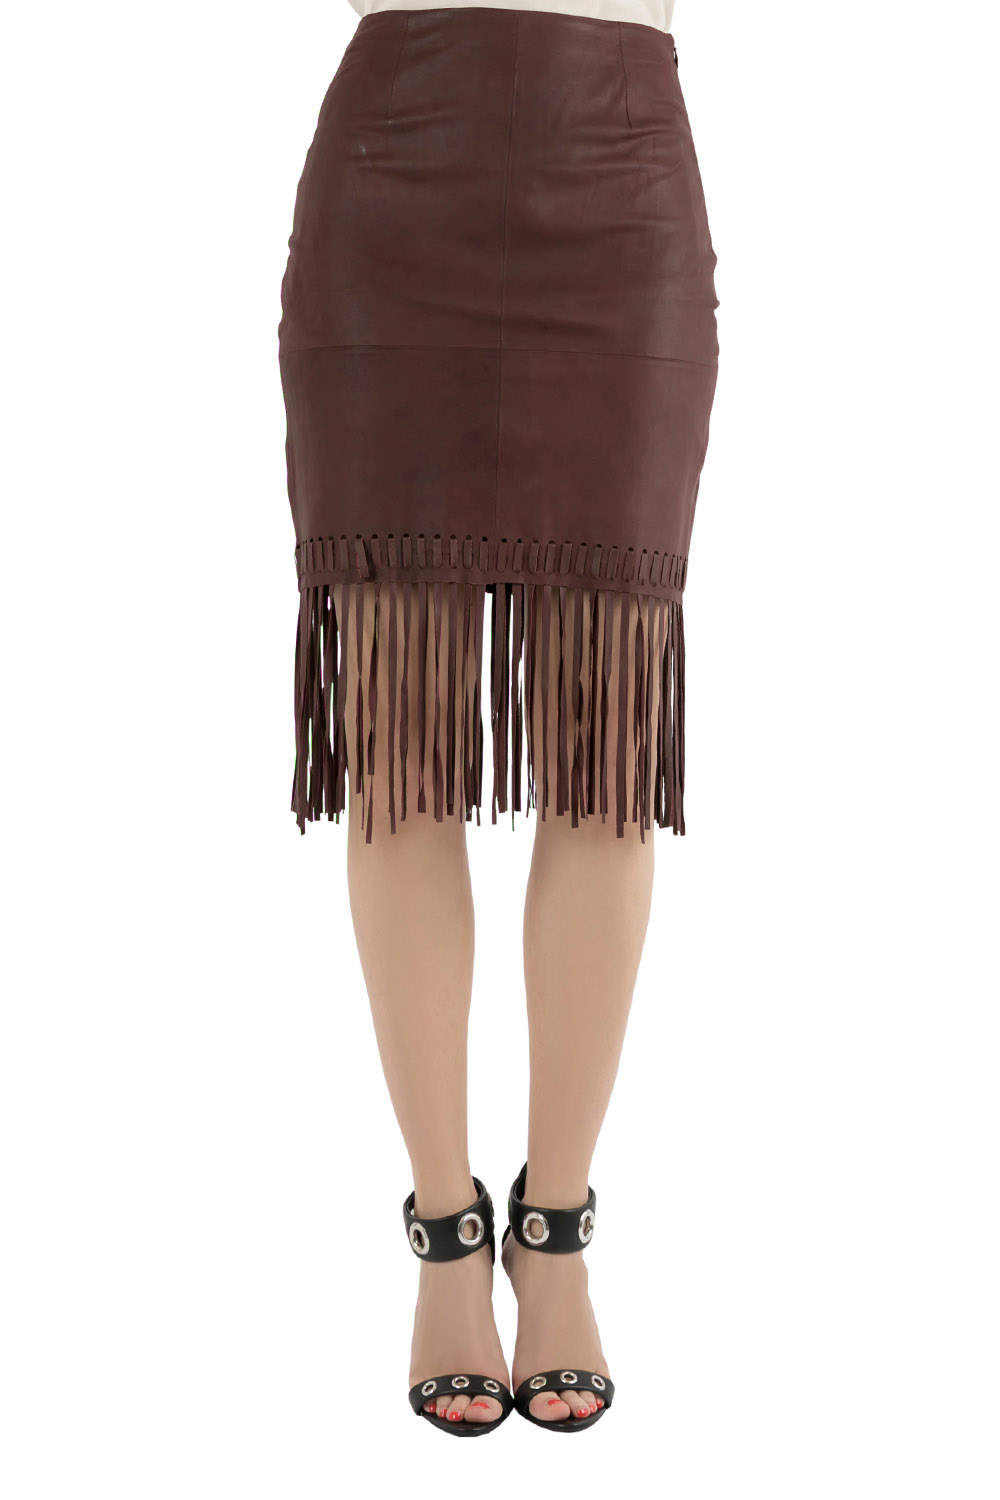 Elizabeth and James Brown Goat Leather Fringed Hem Jaxson Skirt S